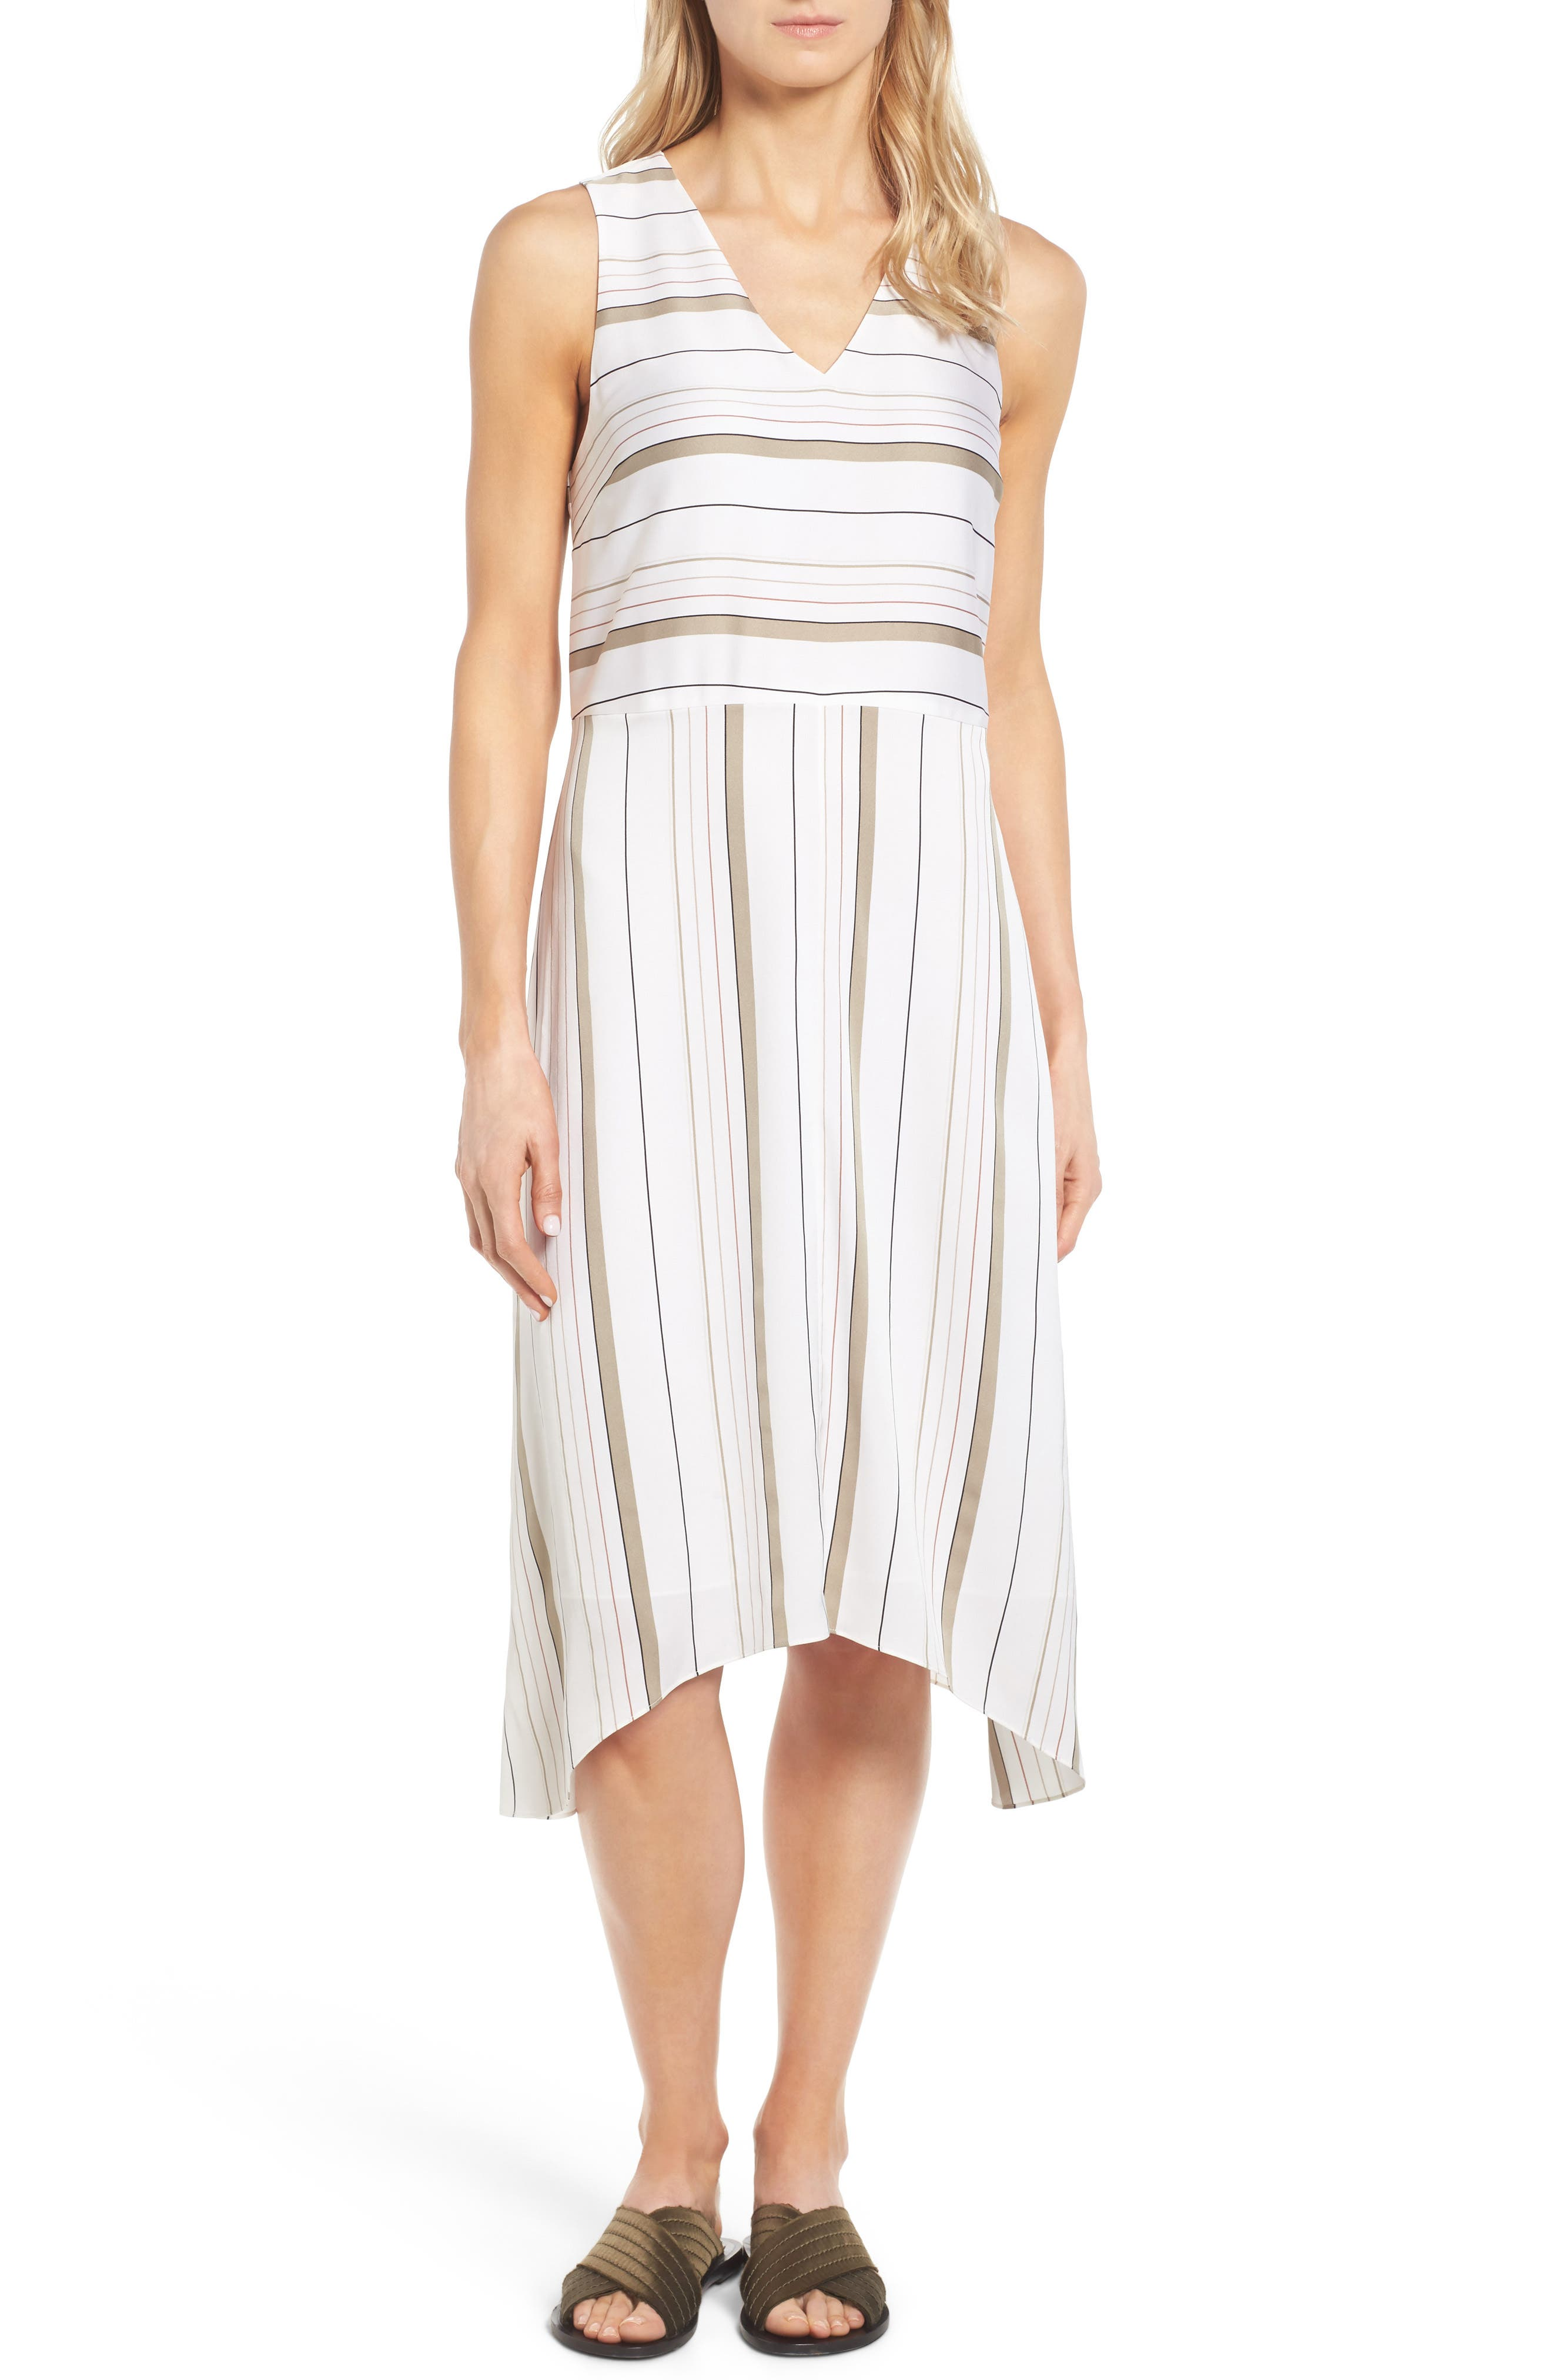 NORDSTROM COLLECTION, Stripe Stretch Silk Dress, Main thumbnail 1, color, 900